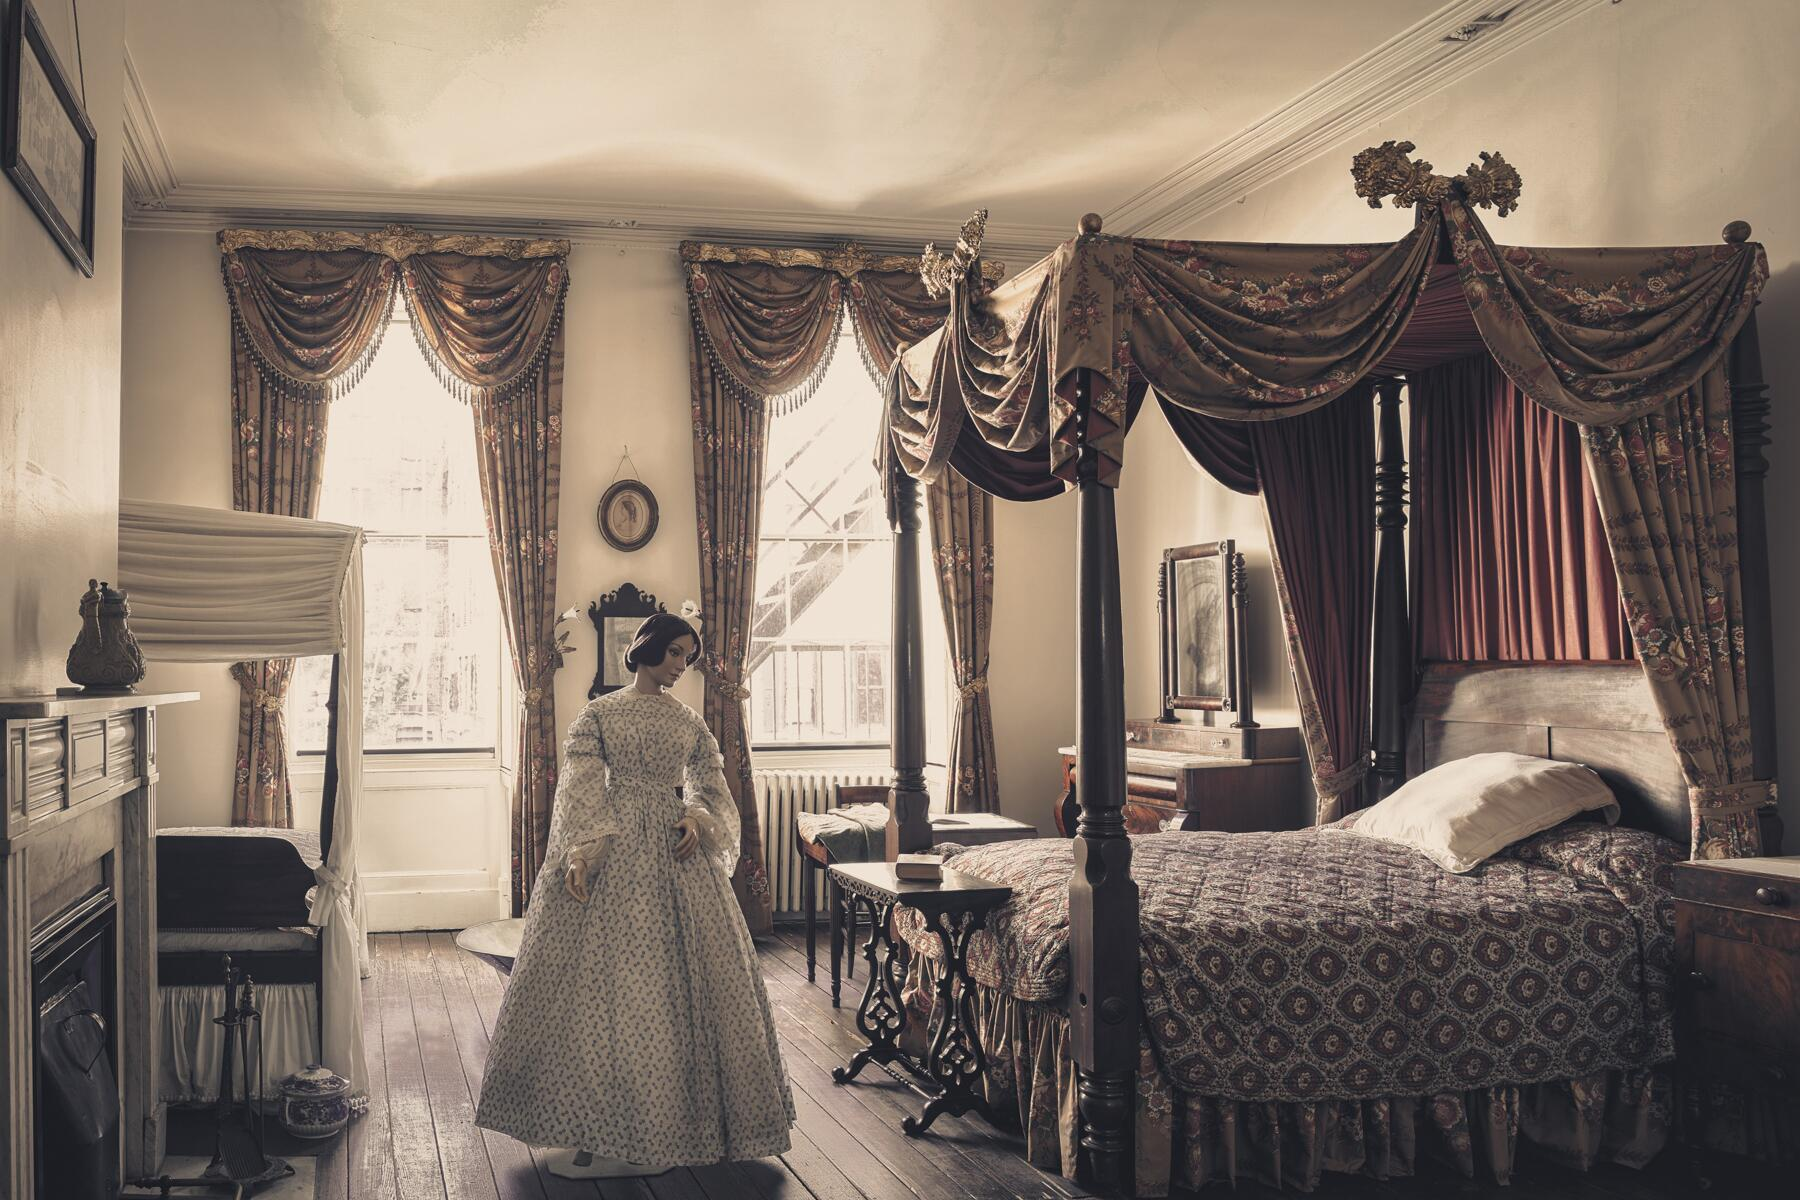 The Most Haunted Places In New York City